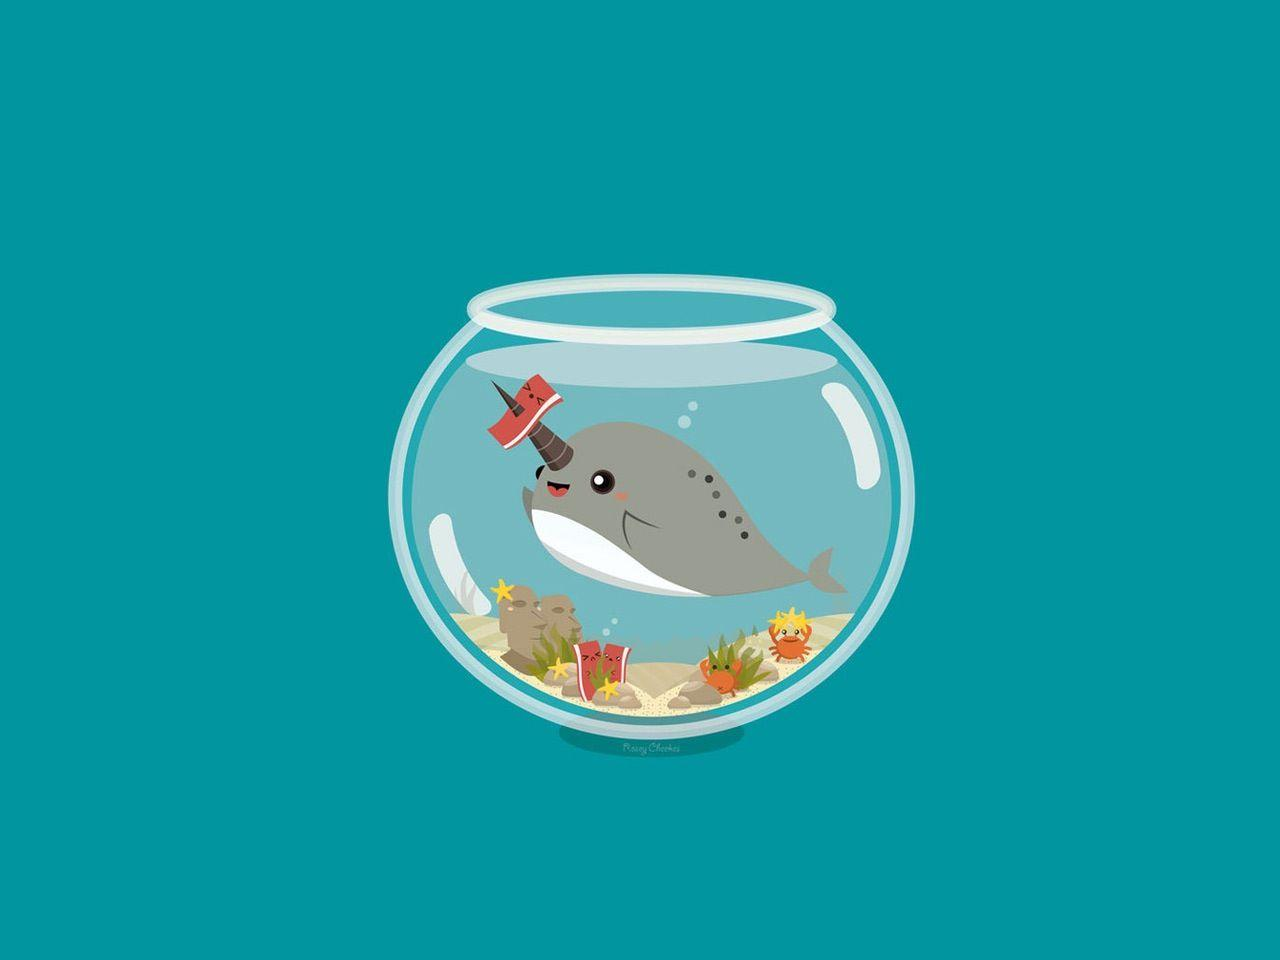 Cute Narwhal Wallpapers   Top Cute Narwhal Backgrounds 1280x960